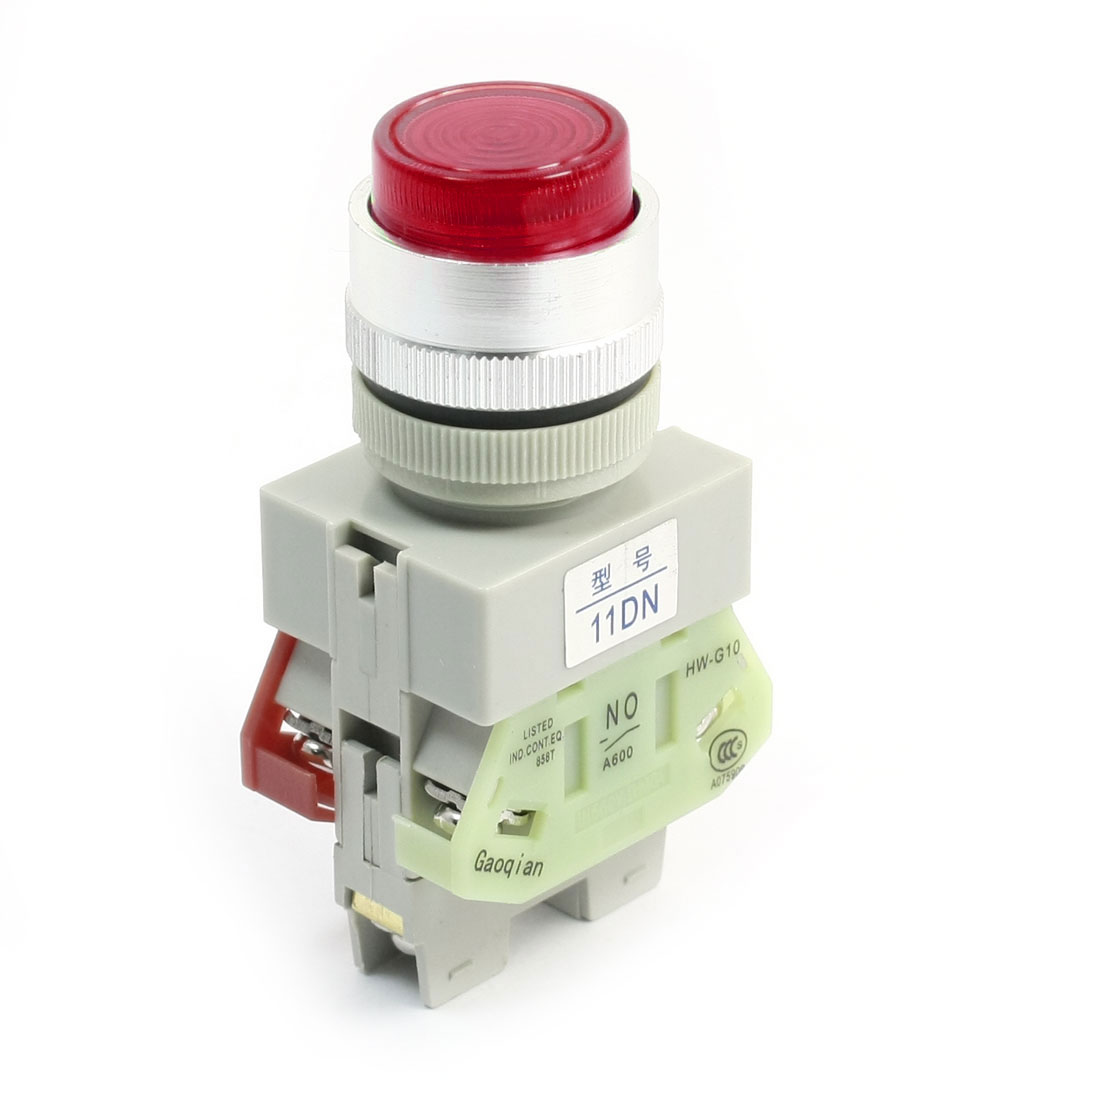 DPST Momentary Red Light Round Head Operator Push Button Switch 660V 10A